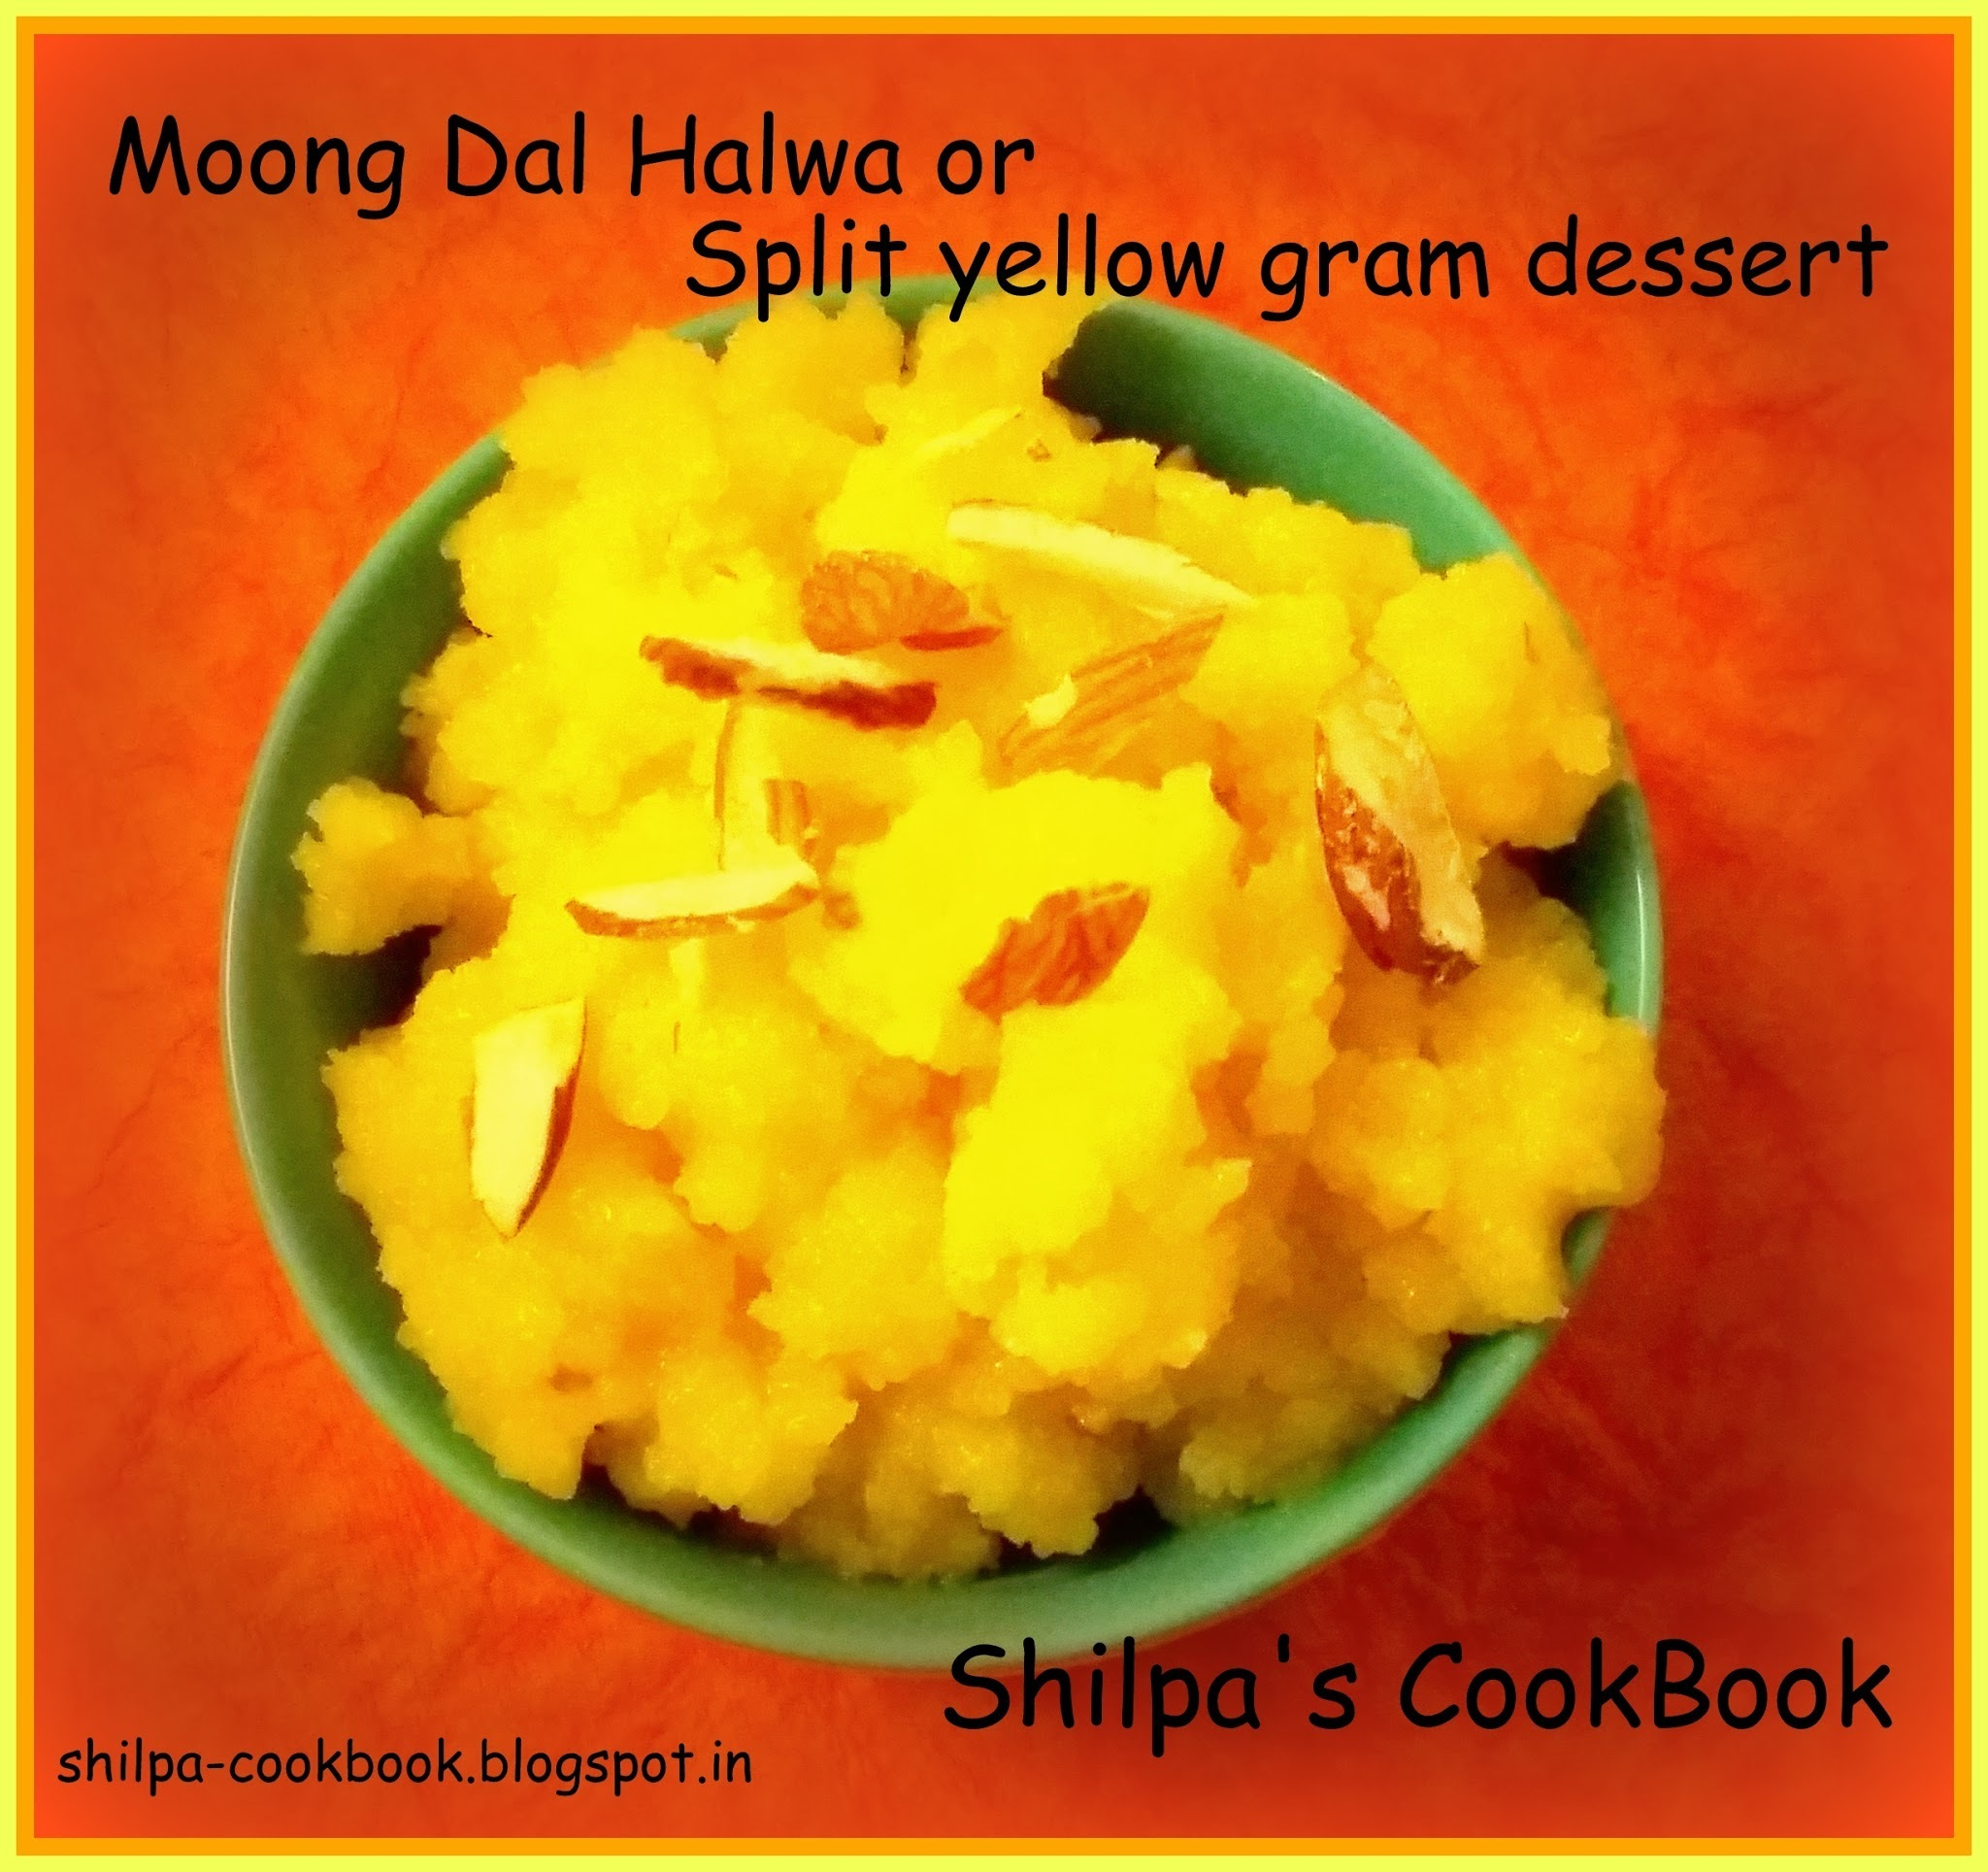 Dish #449 - Moong Dal Halwa or Split yellow gram dessert